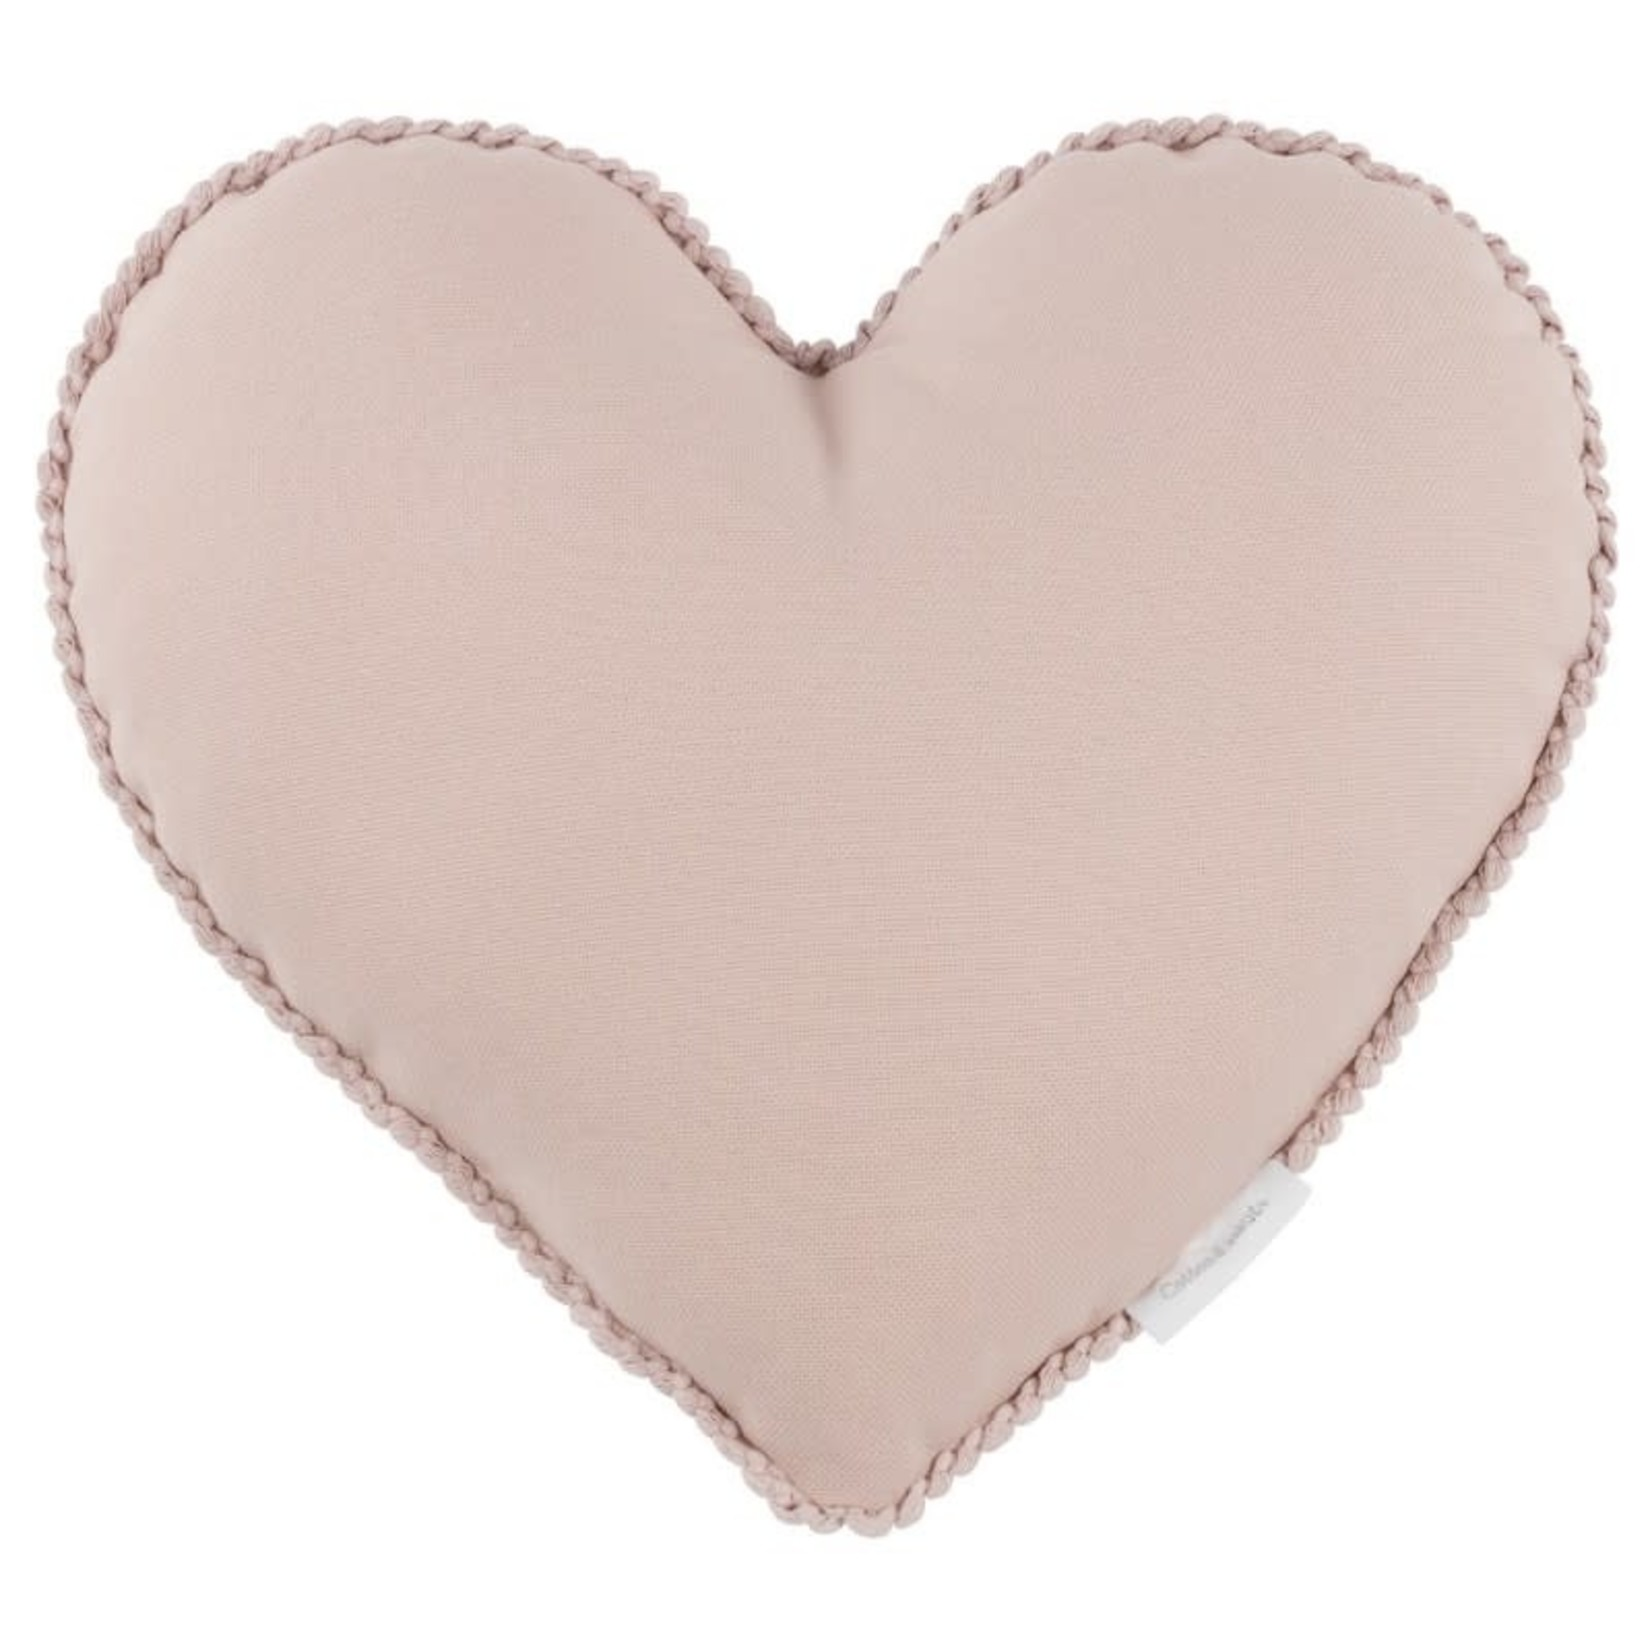 Cotton & Sweets Pillow Heart - Powder Pink